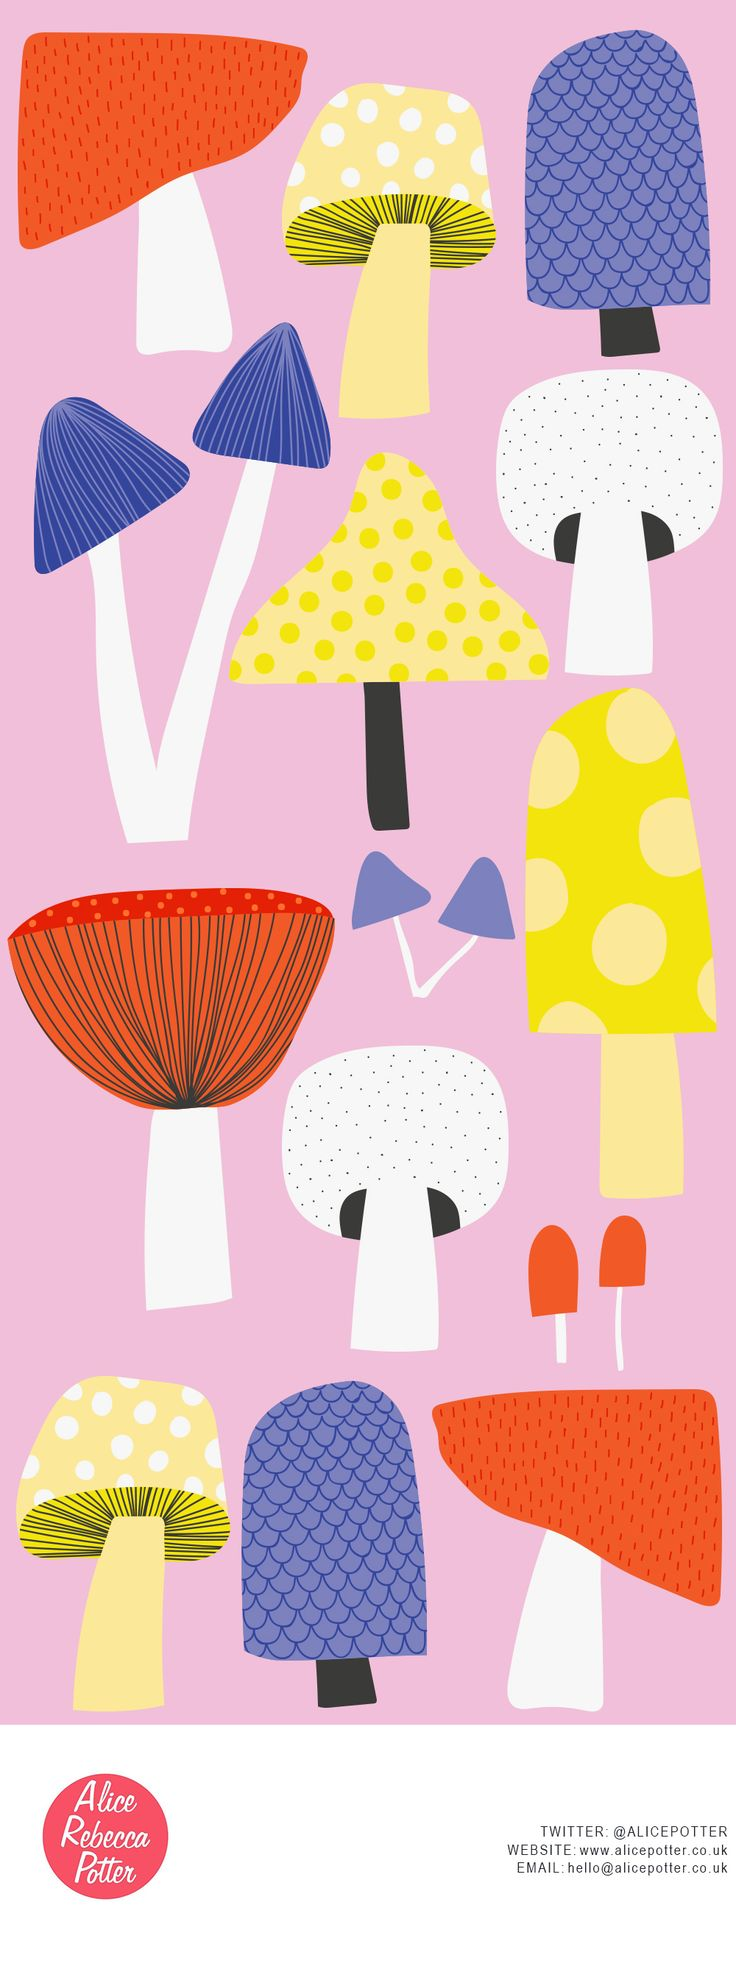 Food Illustration - Mushrooms - Food Icons - Editorial Illustration - Recipes - Surface Pattern Design - By Alice Potter Illustration www.alicepotter.co.uk